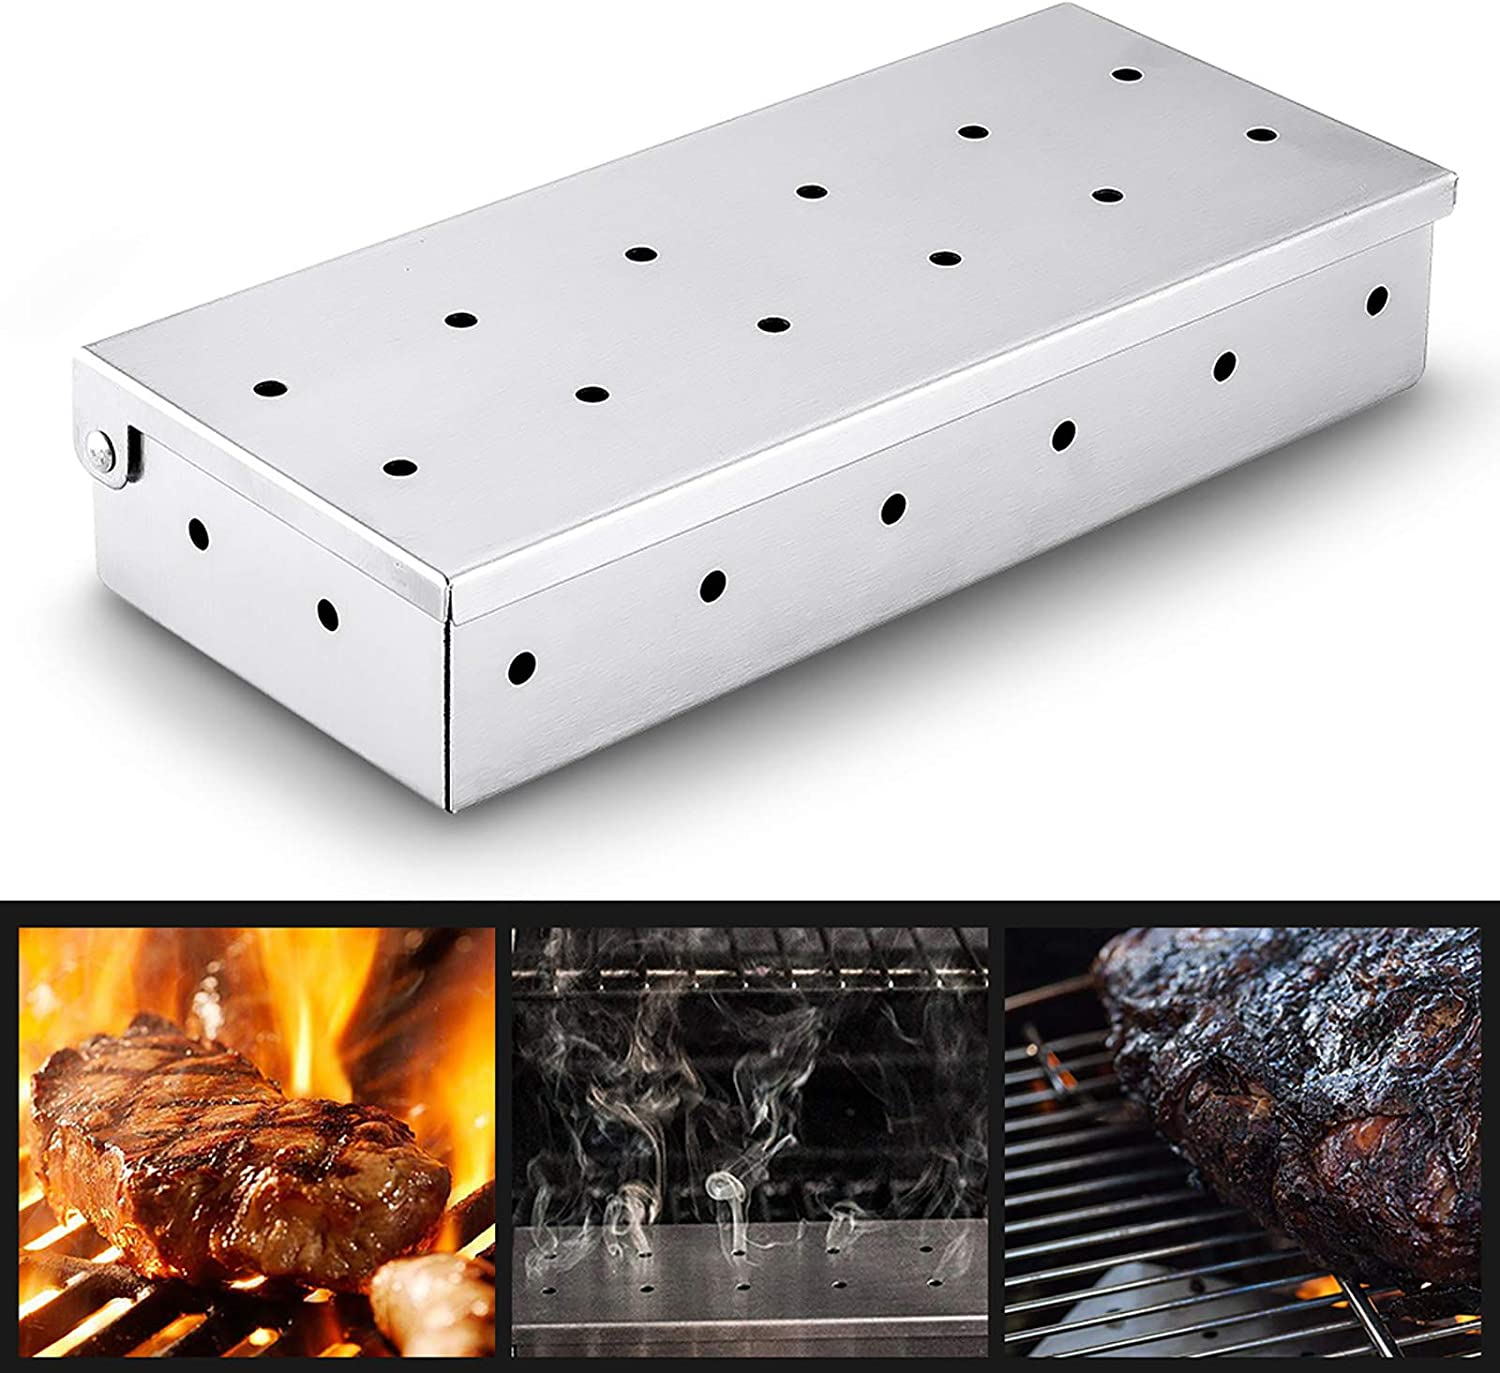 WHIFEA Stainless Steel Smoker Box for Wood Chips, BBQ Smoke Flavor, Top Meat Thick Smoker Box in Barbecue Grilling Accessories, Use a Gas or Charcoa Barbecue Grilling Accessories